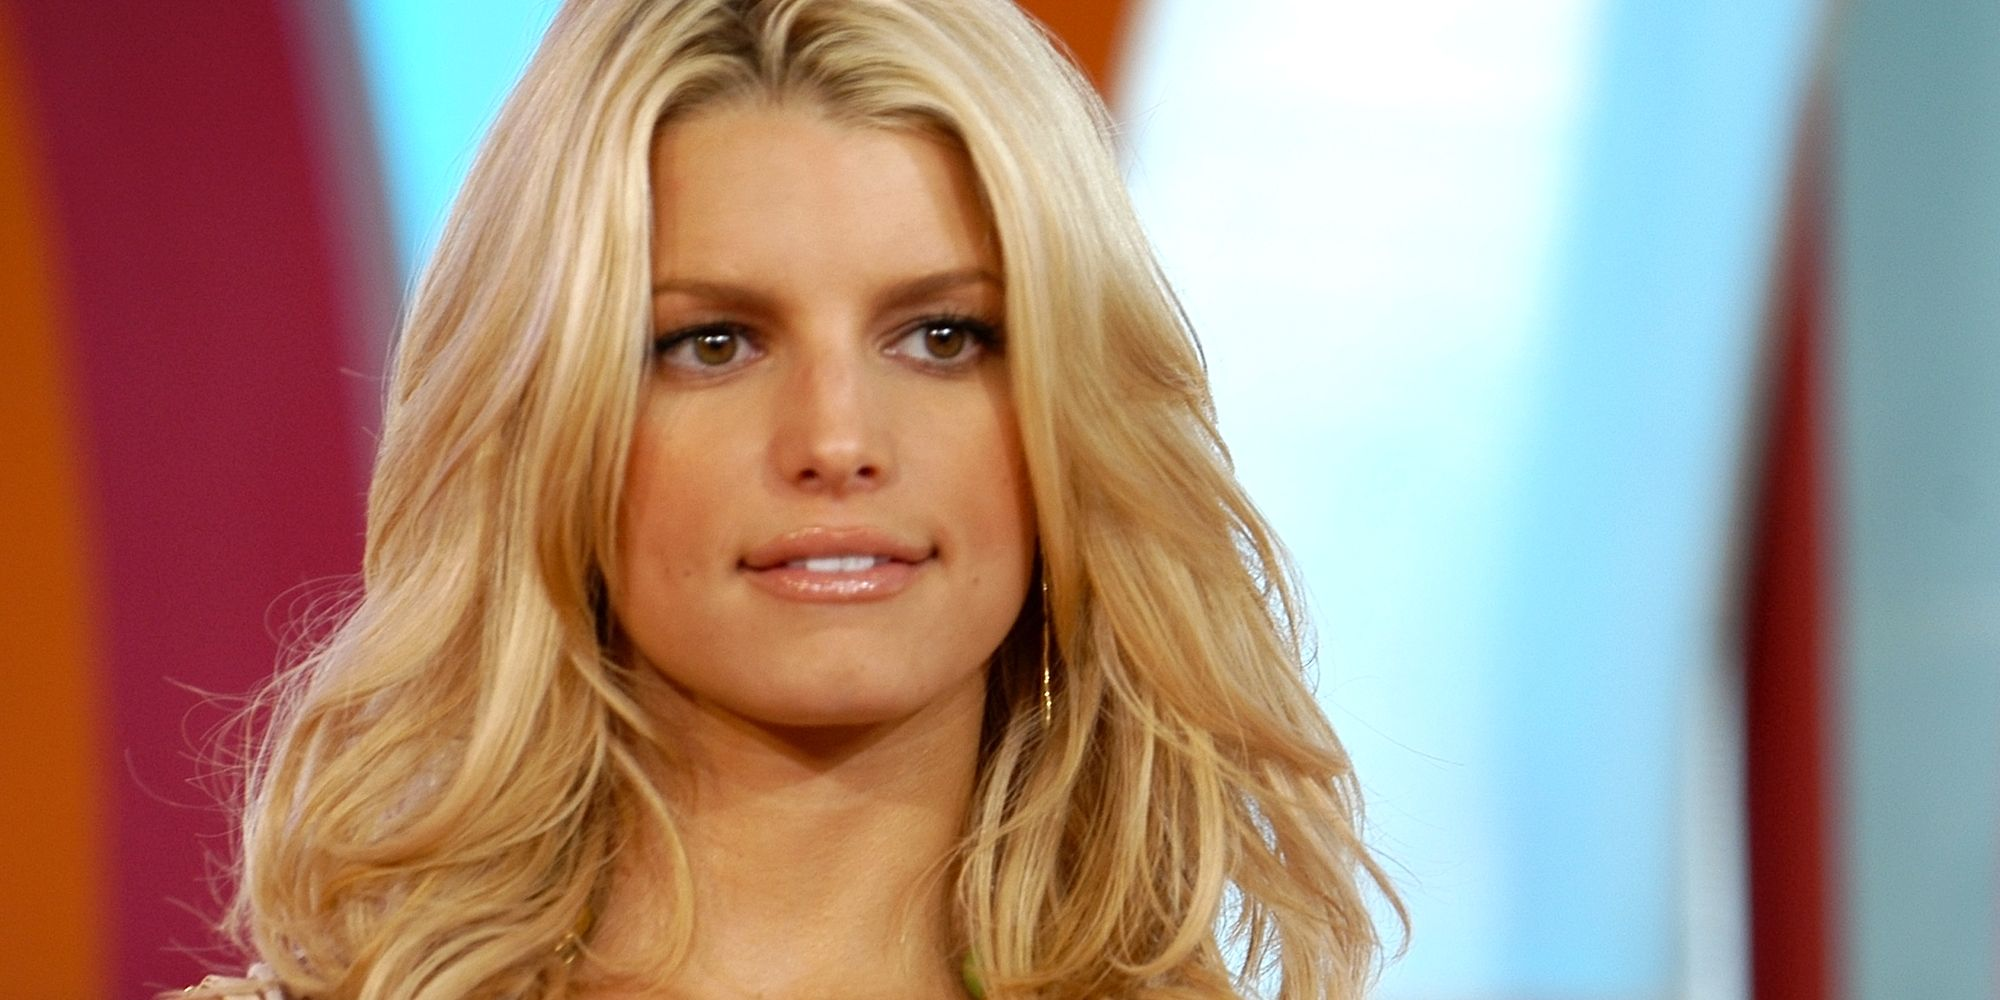 Jessica Simpson With Red Hair And Bangs Looks Completely Unrecognizable